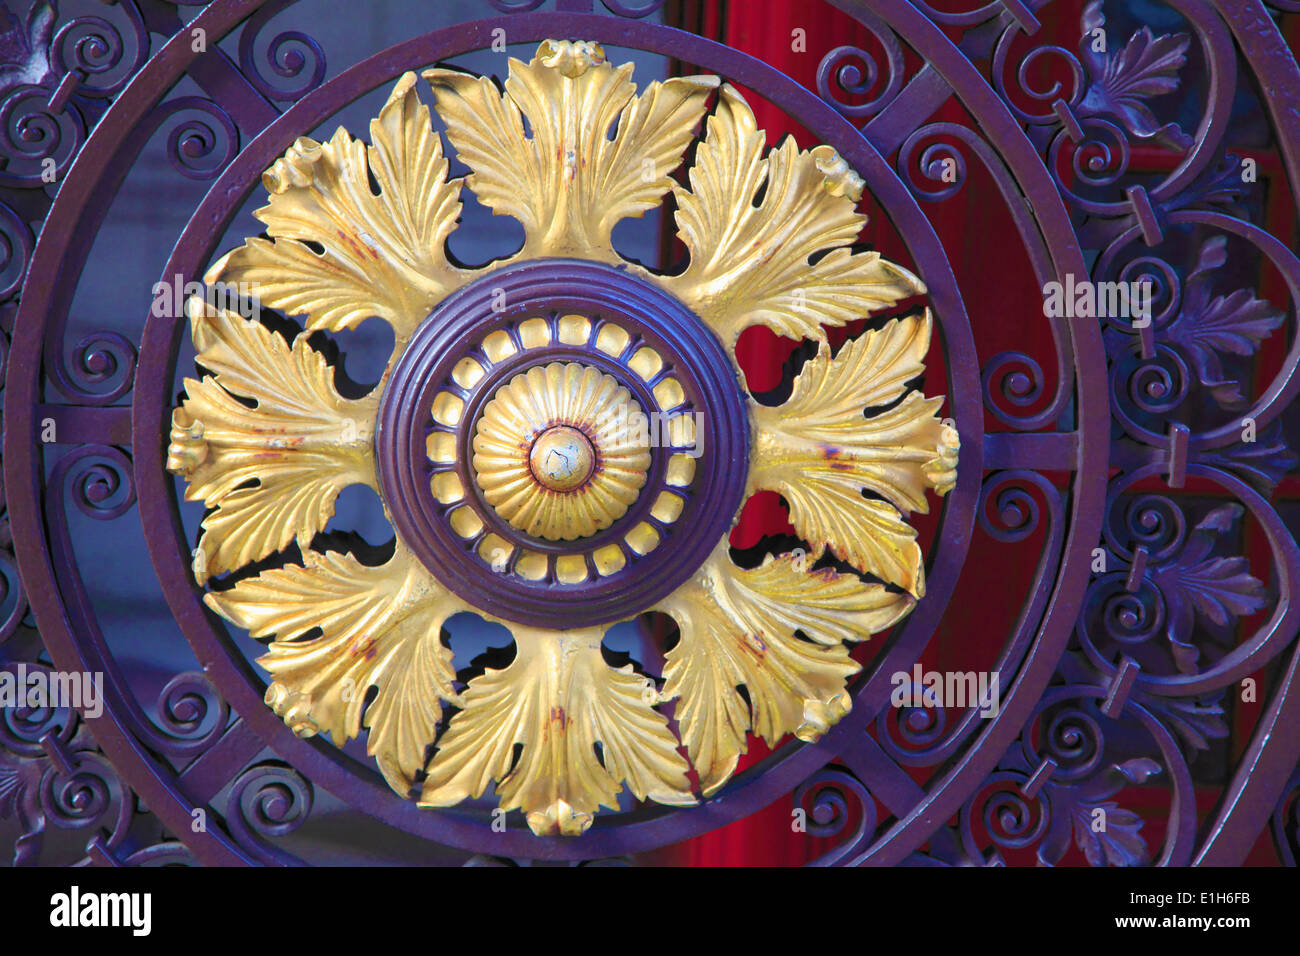 UK, England, London, Picadilly, Burlington House, door, - Stock Image